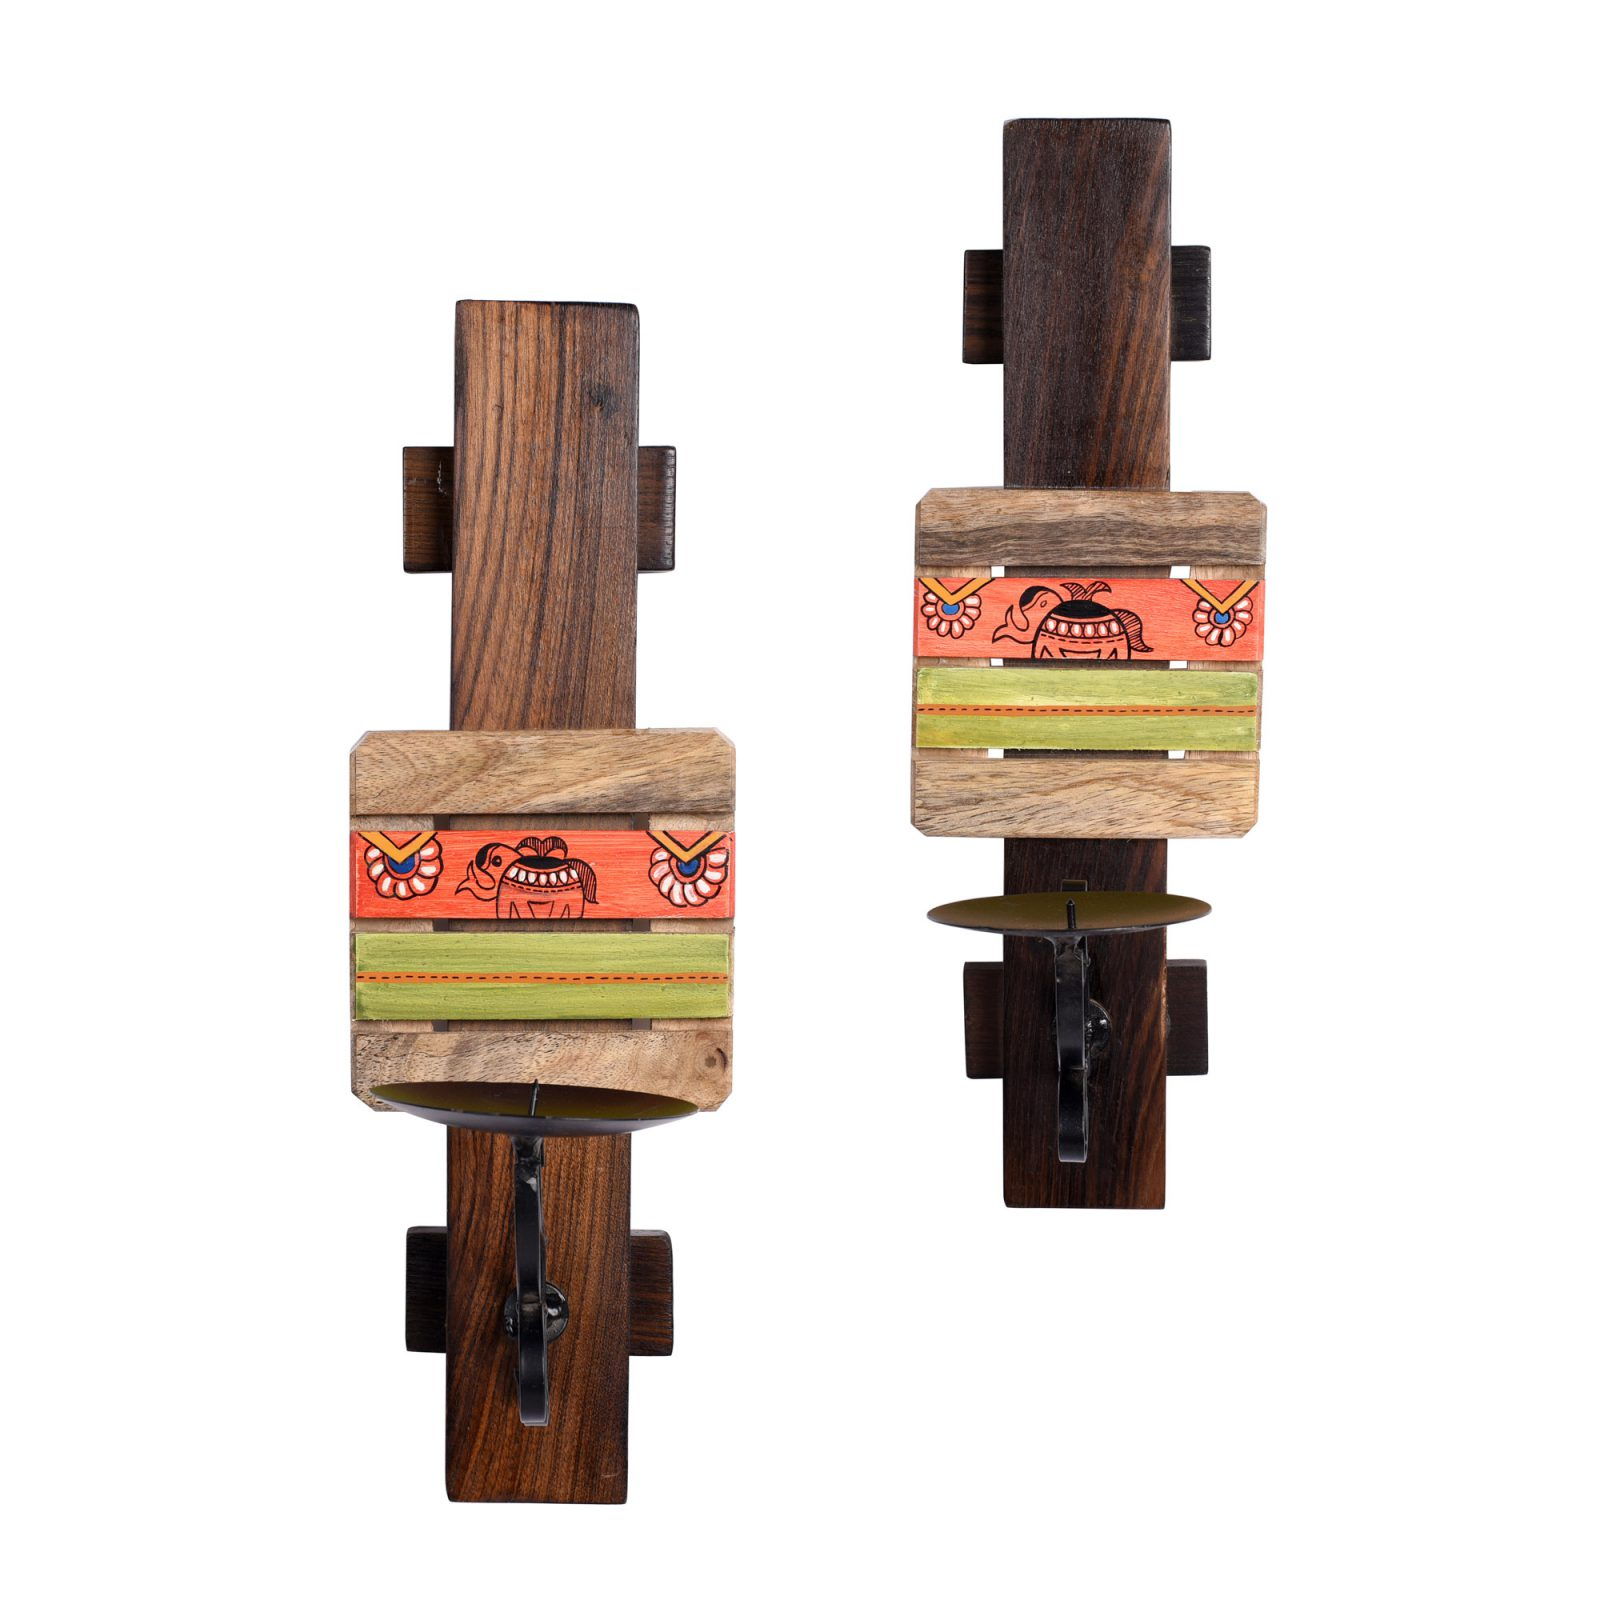 Handcrafted Wooden Candle Holder